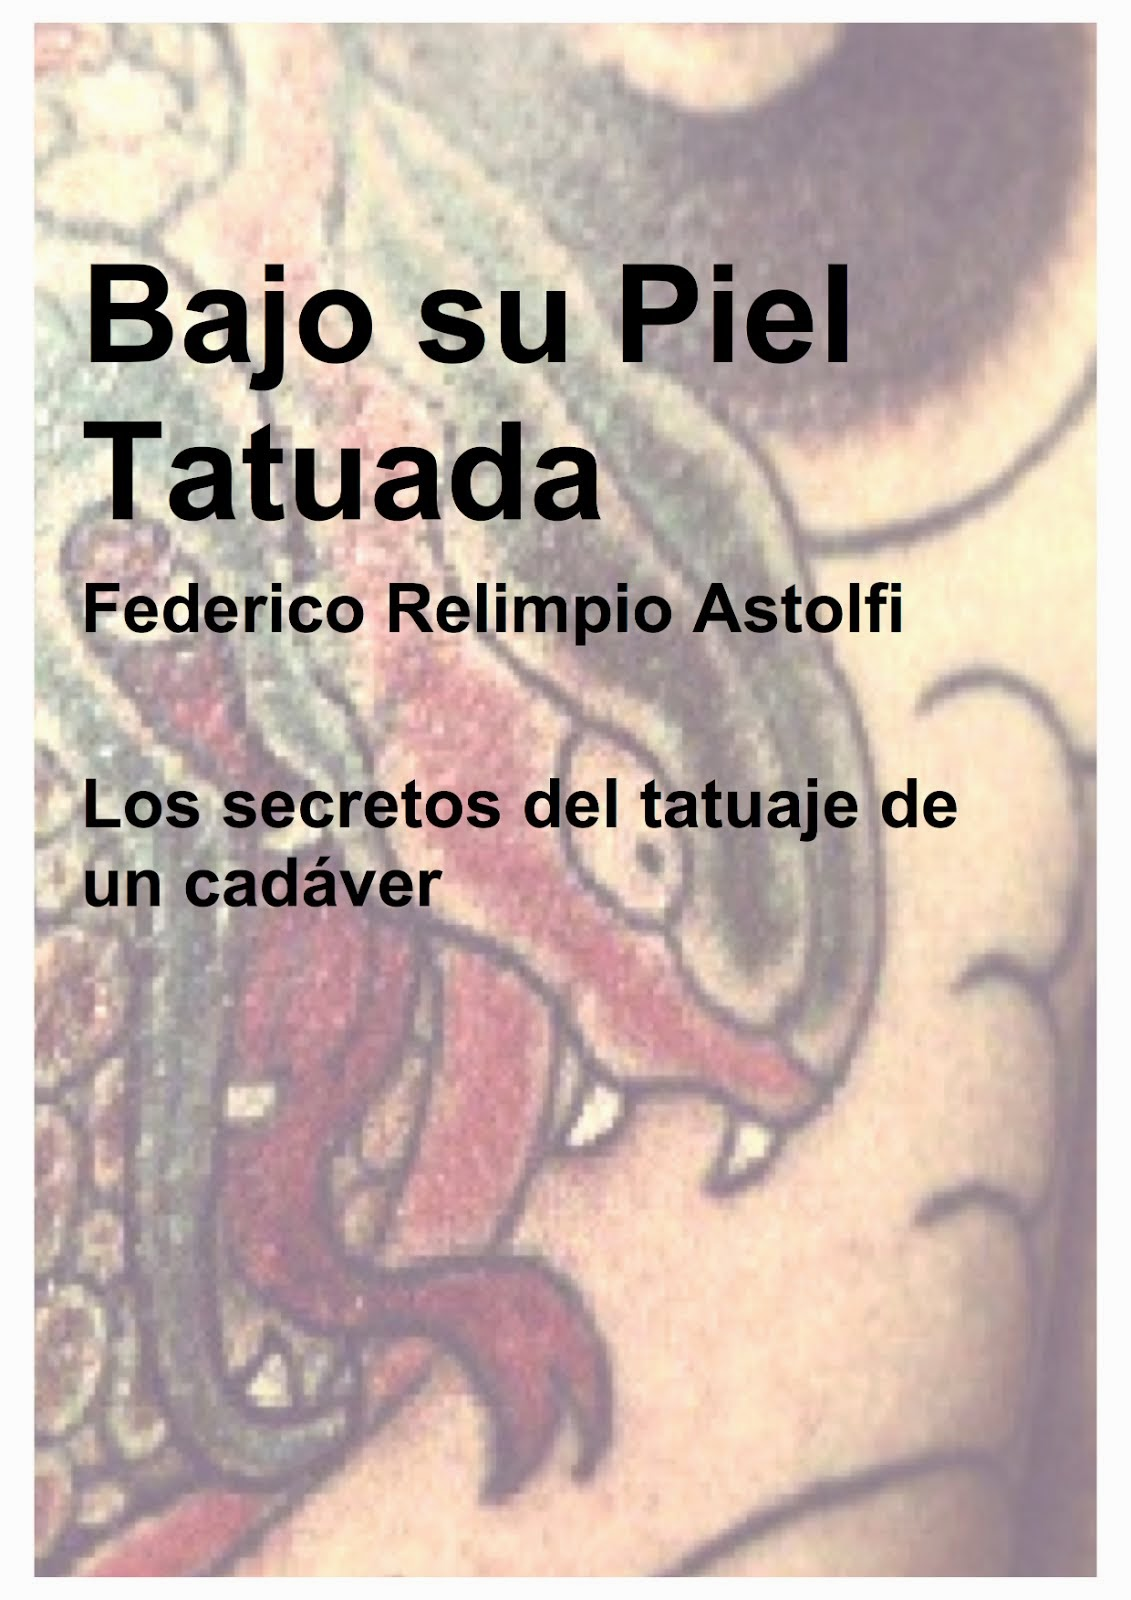 NUEVA NOVELA DE FEDERICO (E-Book Kindle amazon)